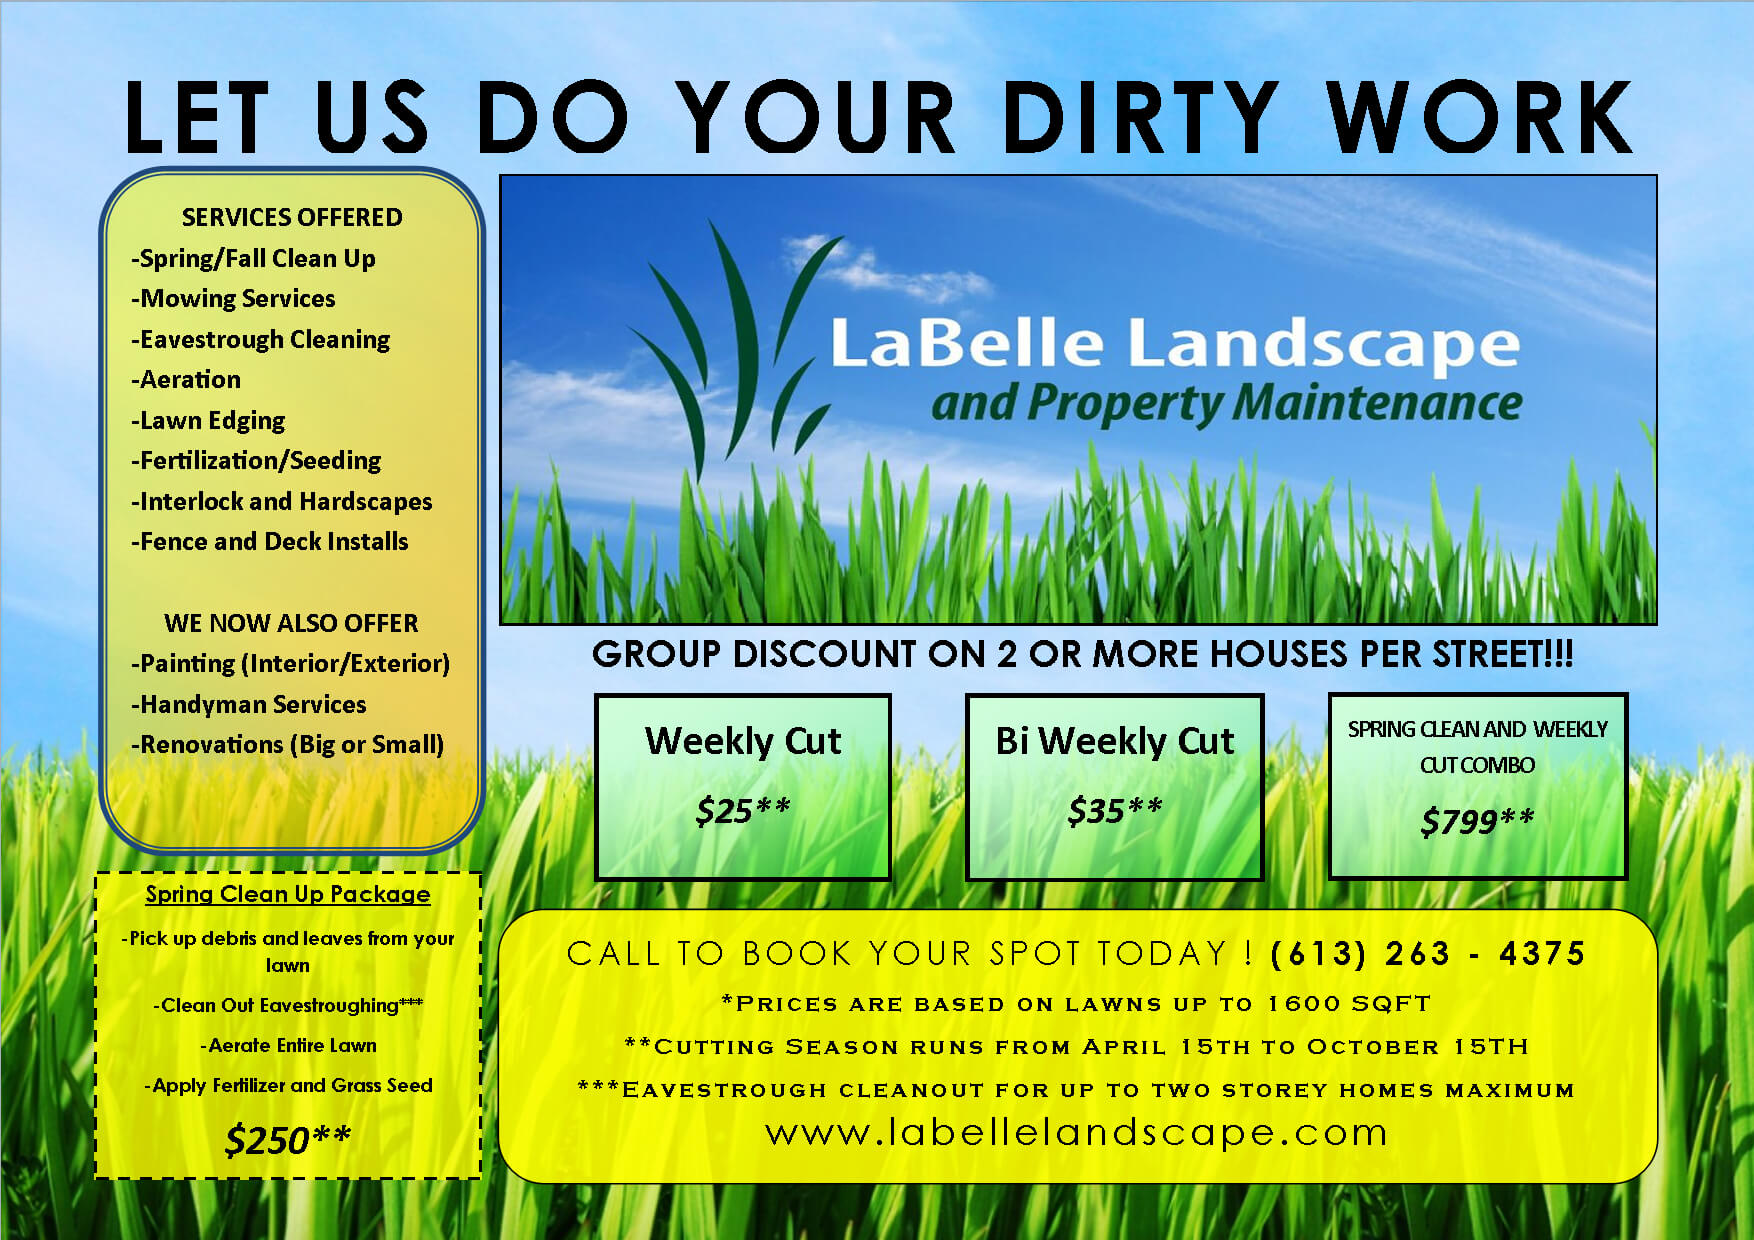 Lawn Care Flyer Free Template | Lawn Care Business, Lawn intended for Lawn Care Business Cards Templates Free